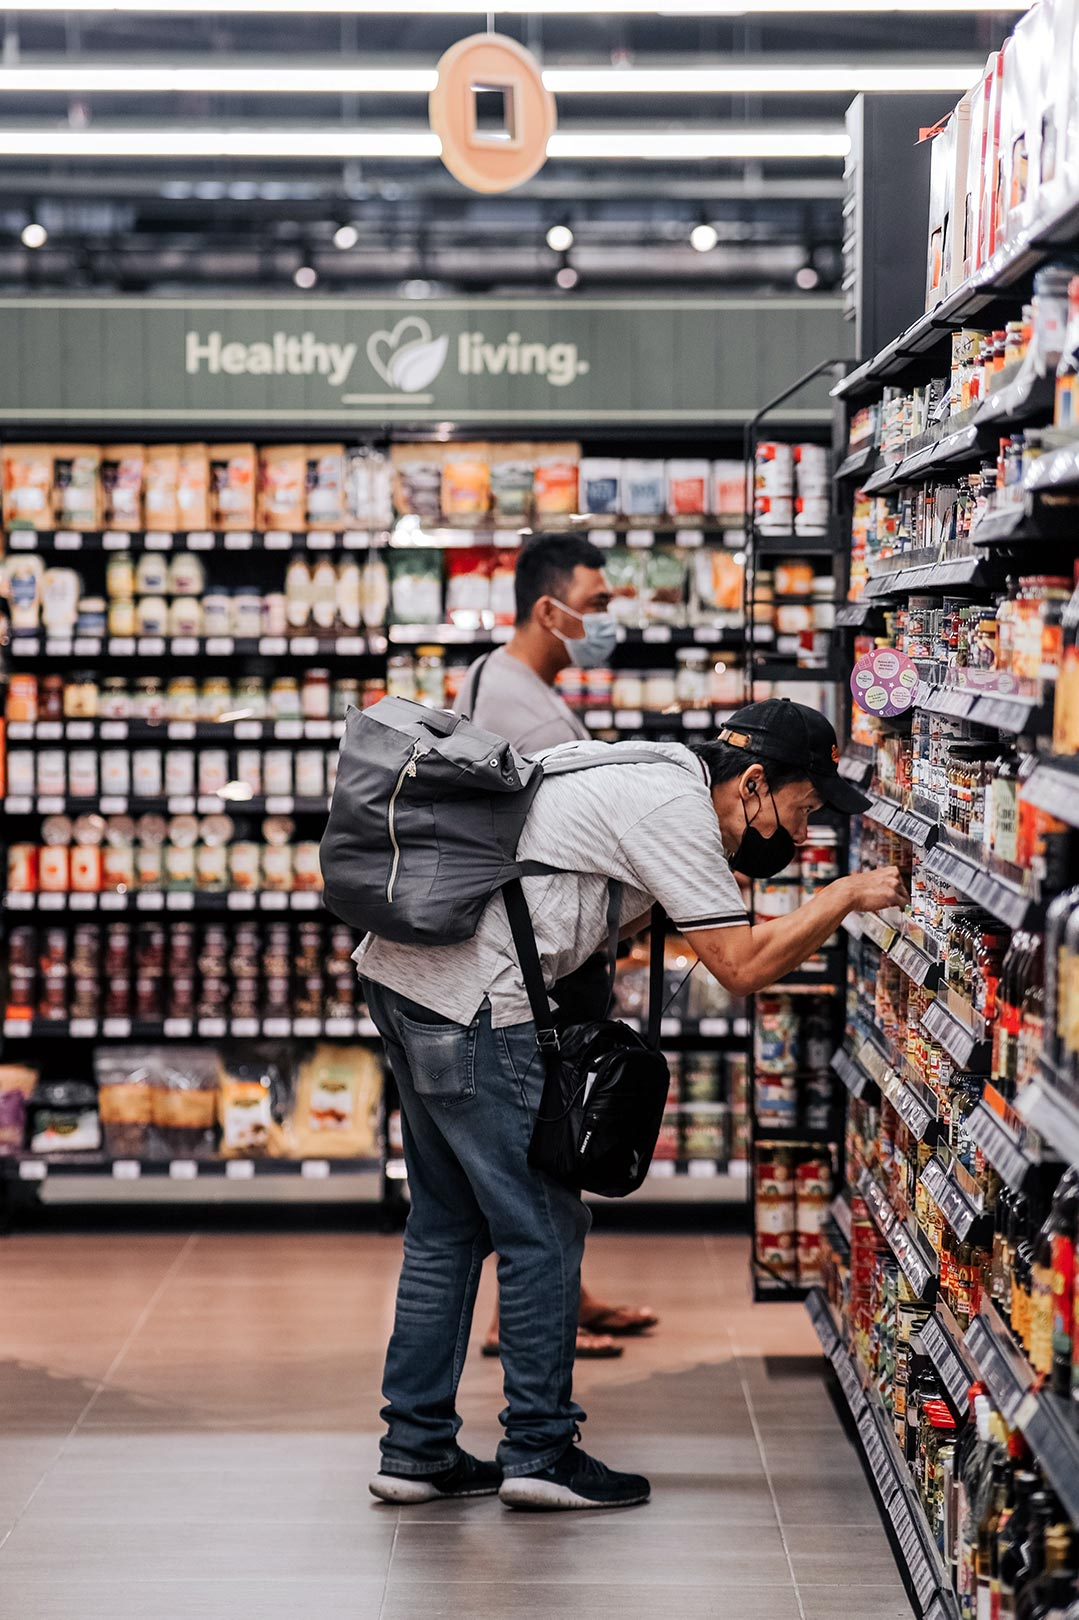 two people in aisle at grocery store